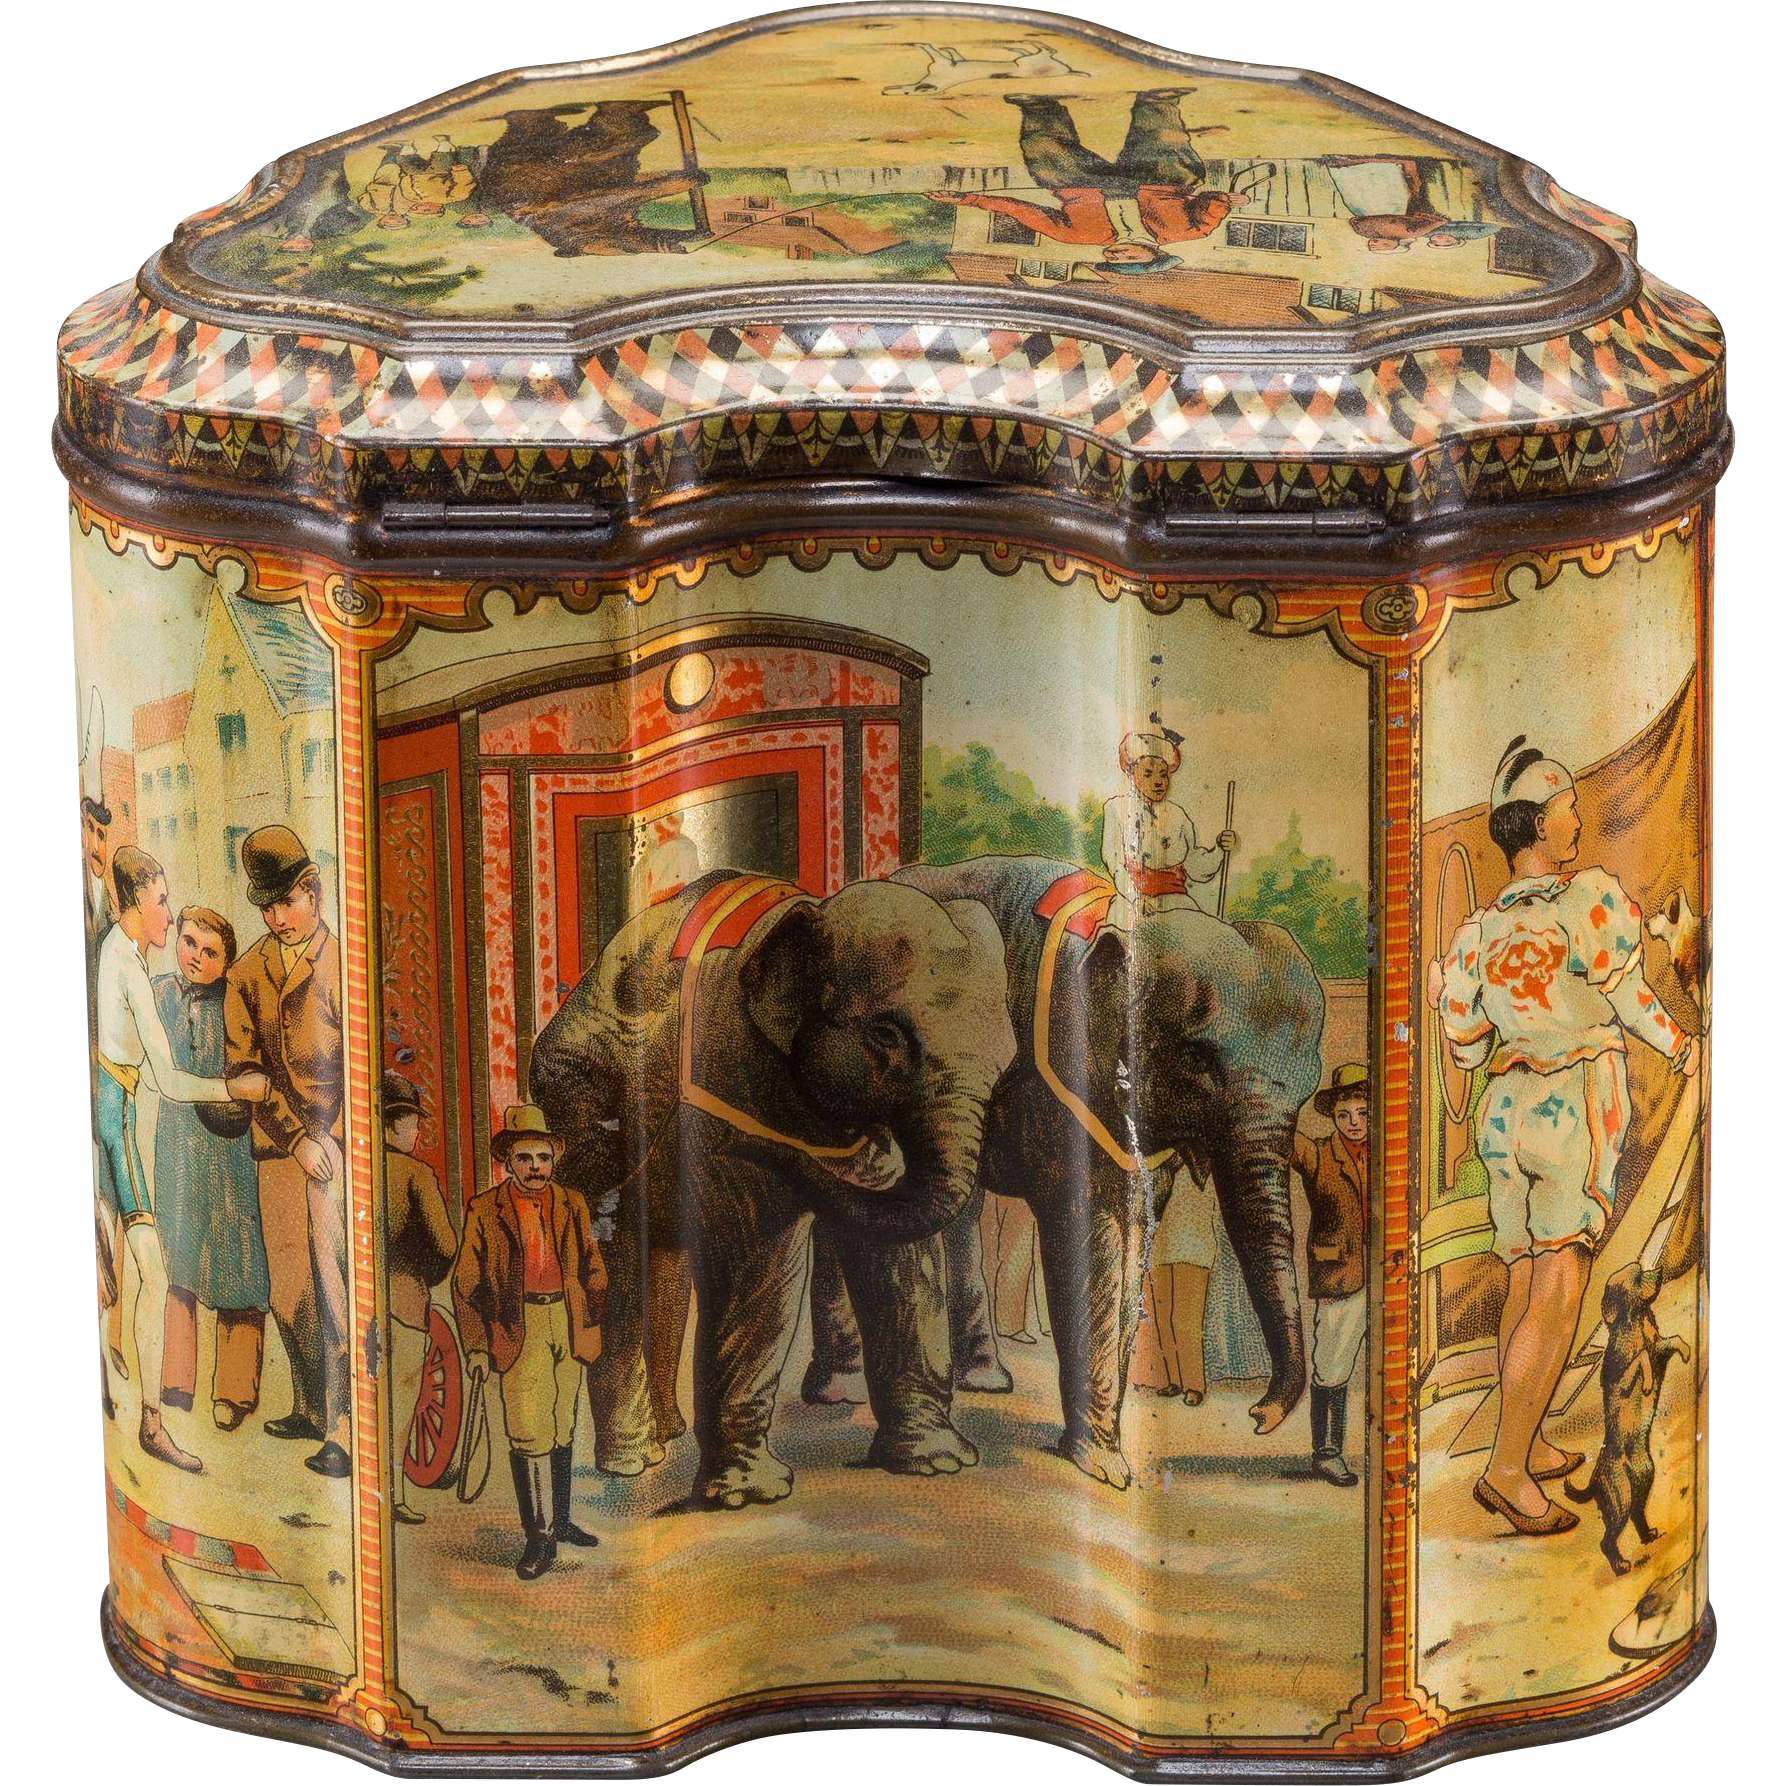 """Antique Biscuit Tin, Rare Circus Themed, by Huntley & Palmers, """"The Showman"""" - c 1893"""